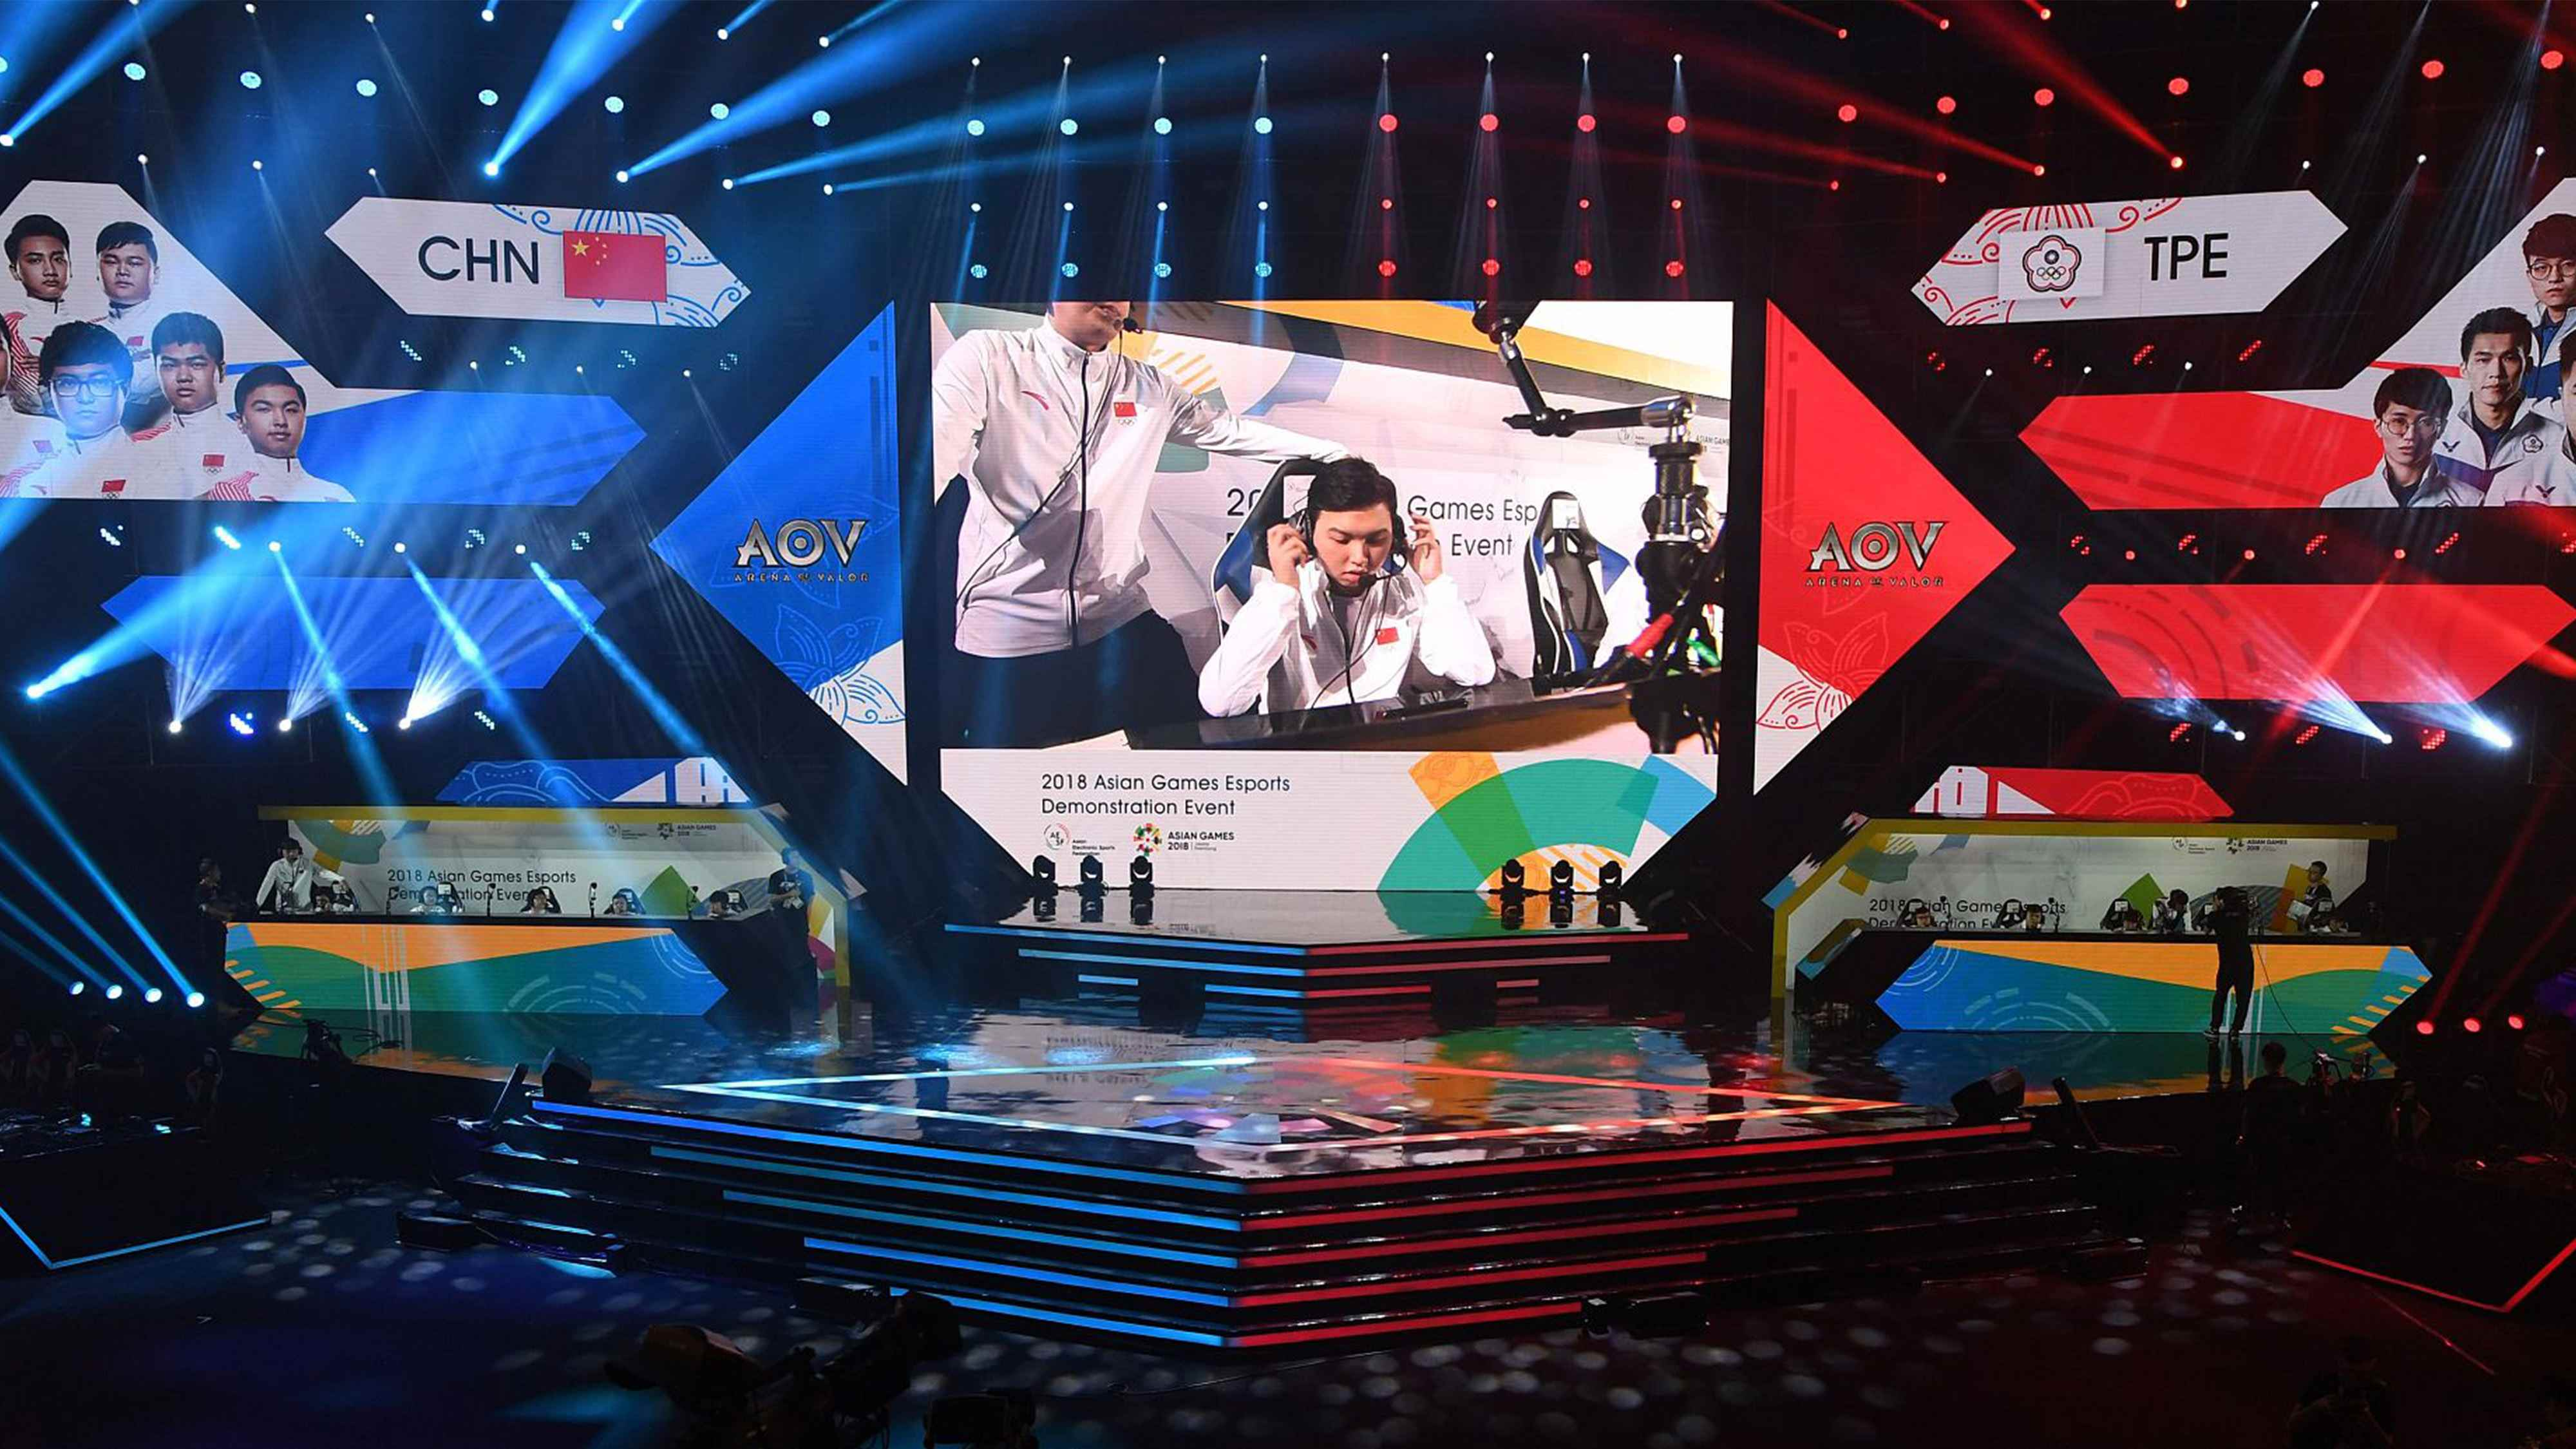 Booming eSports market opens window into Chinese culture